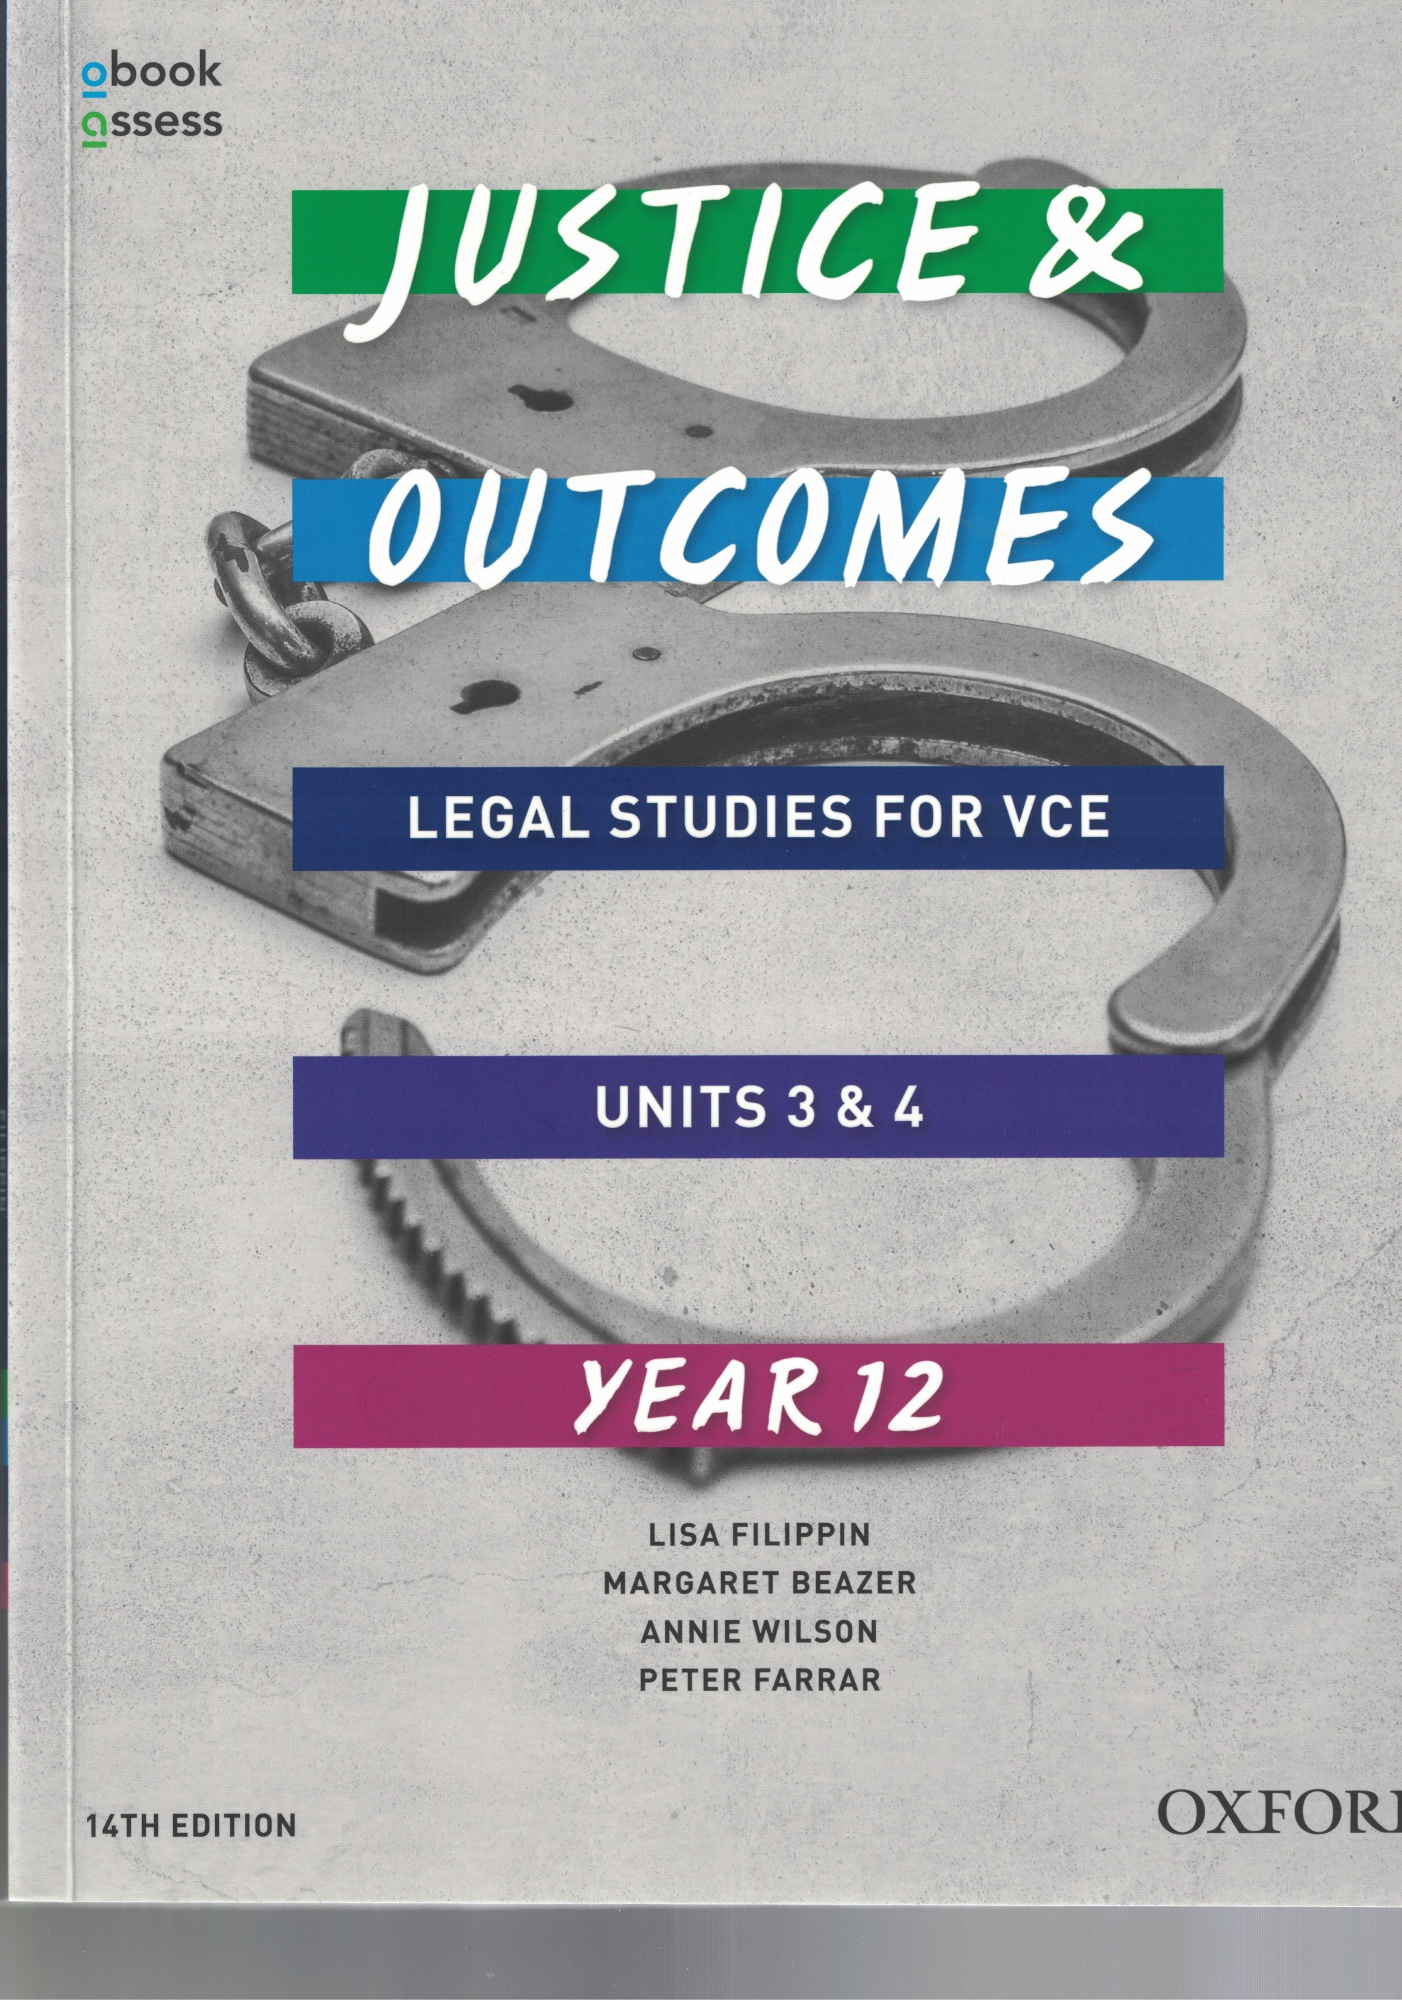 Justice and Outcomes VCE Legal Studies Unit 3 &4 Student book + obook assess